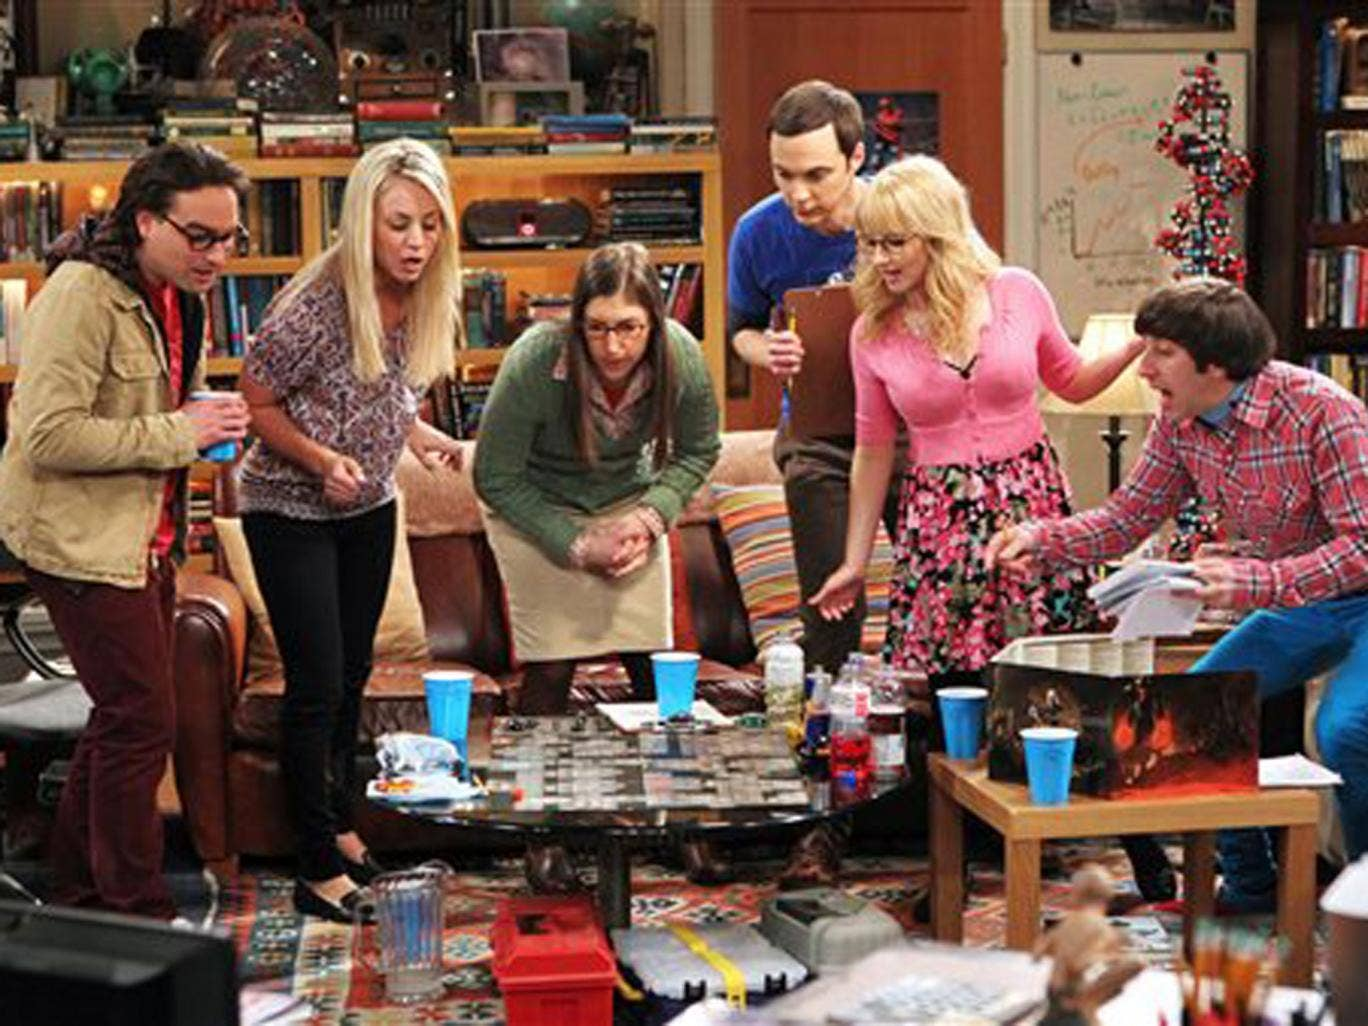 The cast of The Big Bang Theory in a still from the show